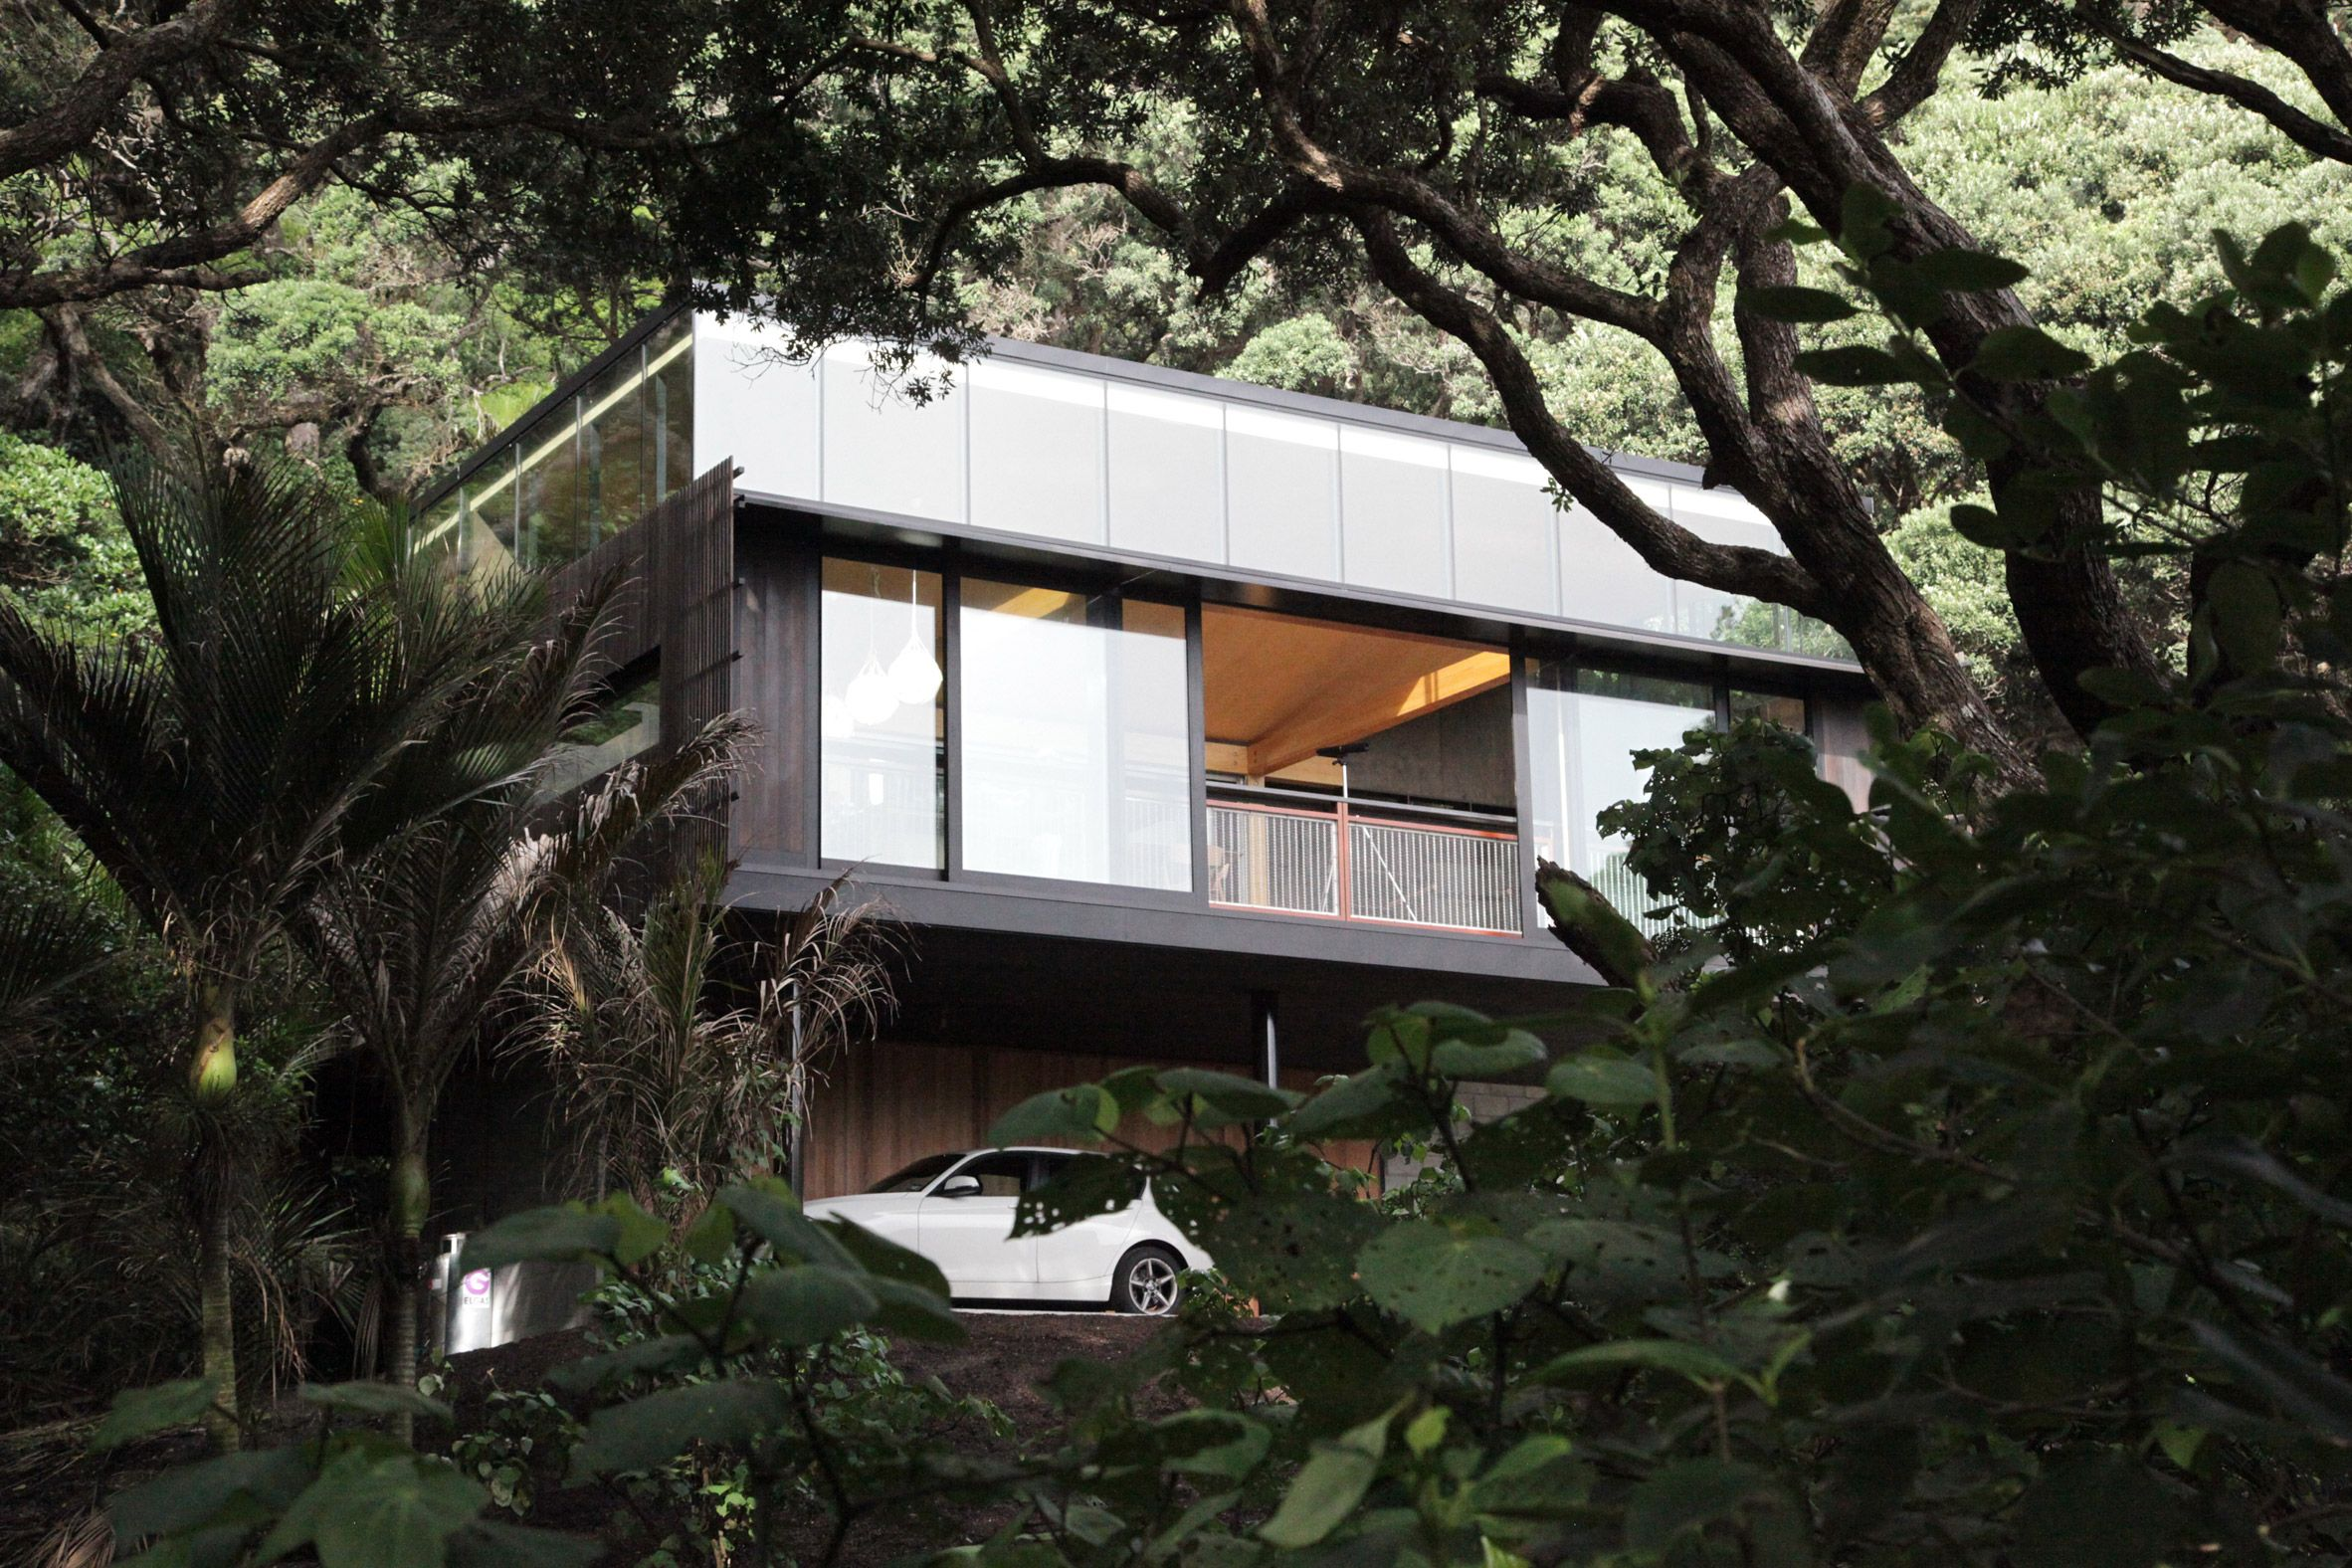 New Zealand Architecture Award By Herbst Architects